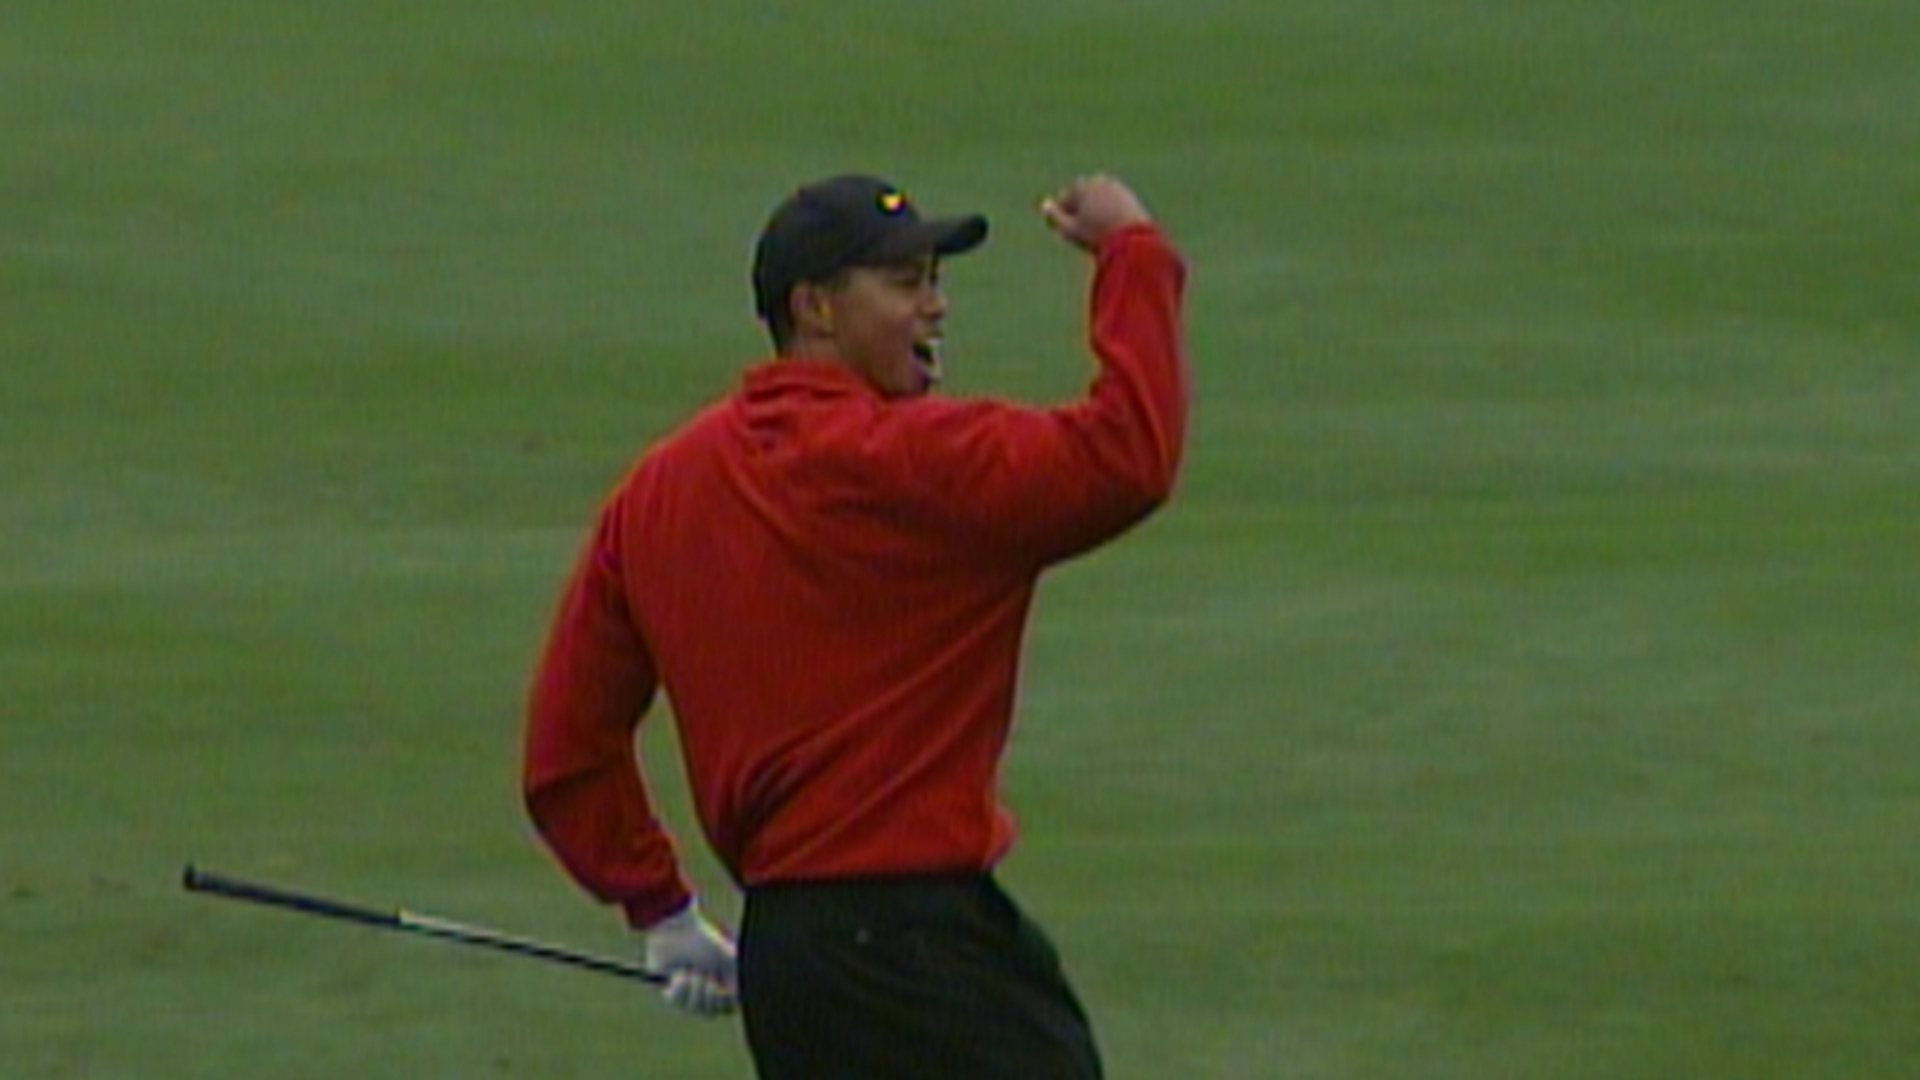 BRPROUD | Tiger Woods tops all-time shots from AT&T Pebble Beach Pro-Am